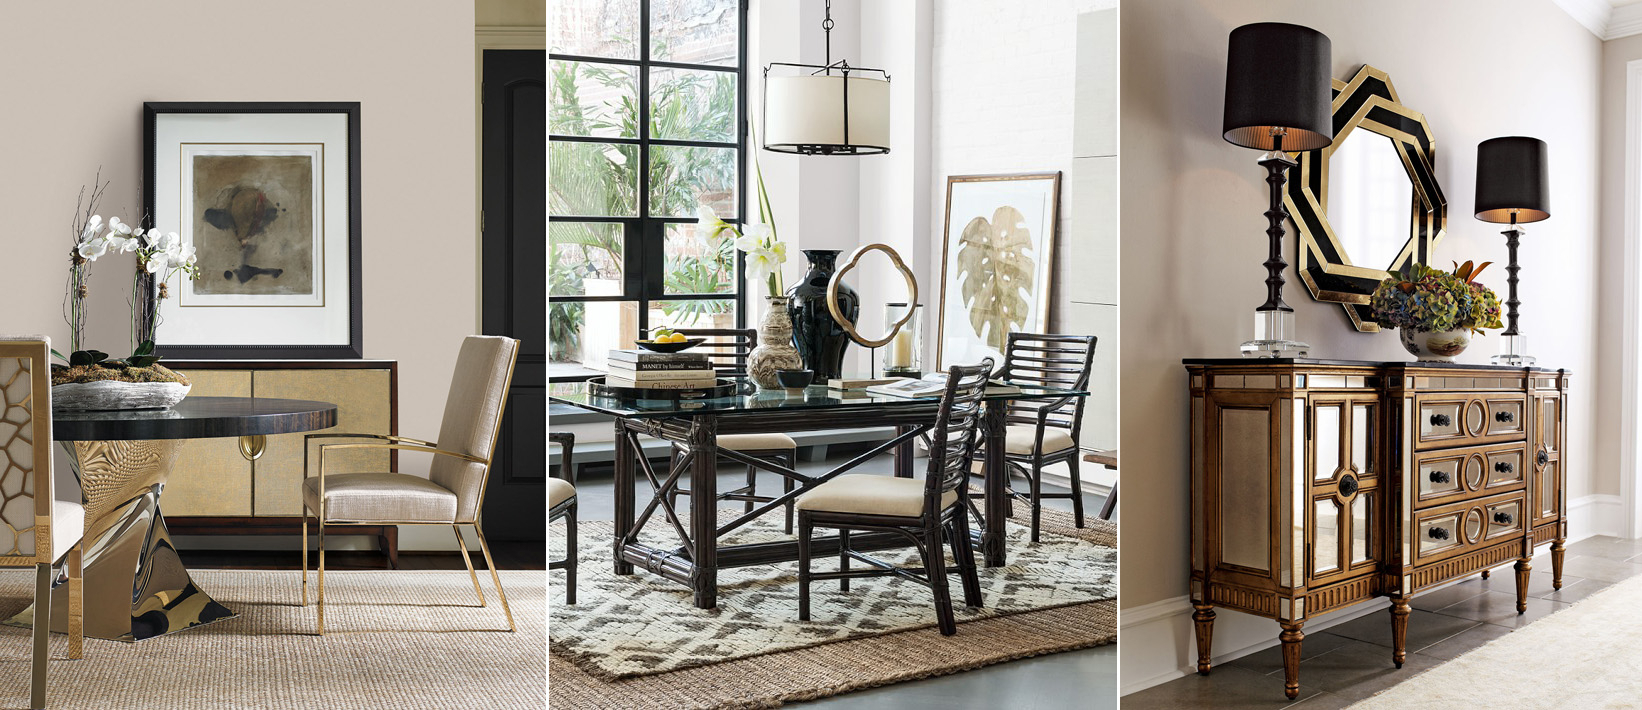 Dining Room Furniture | Dining Room Tables & Chairs Pertaining To 2018 Gray Wash Banks Extending Dining Tables (View 18 of 25)